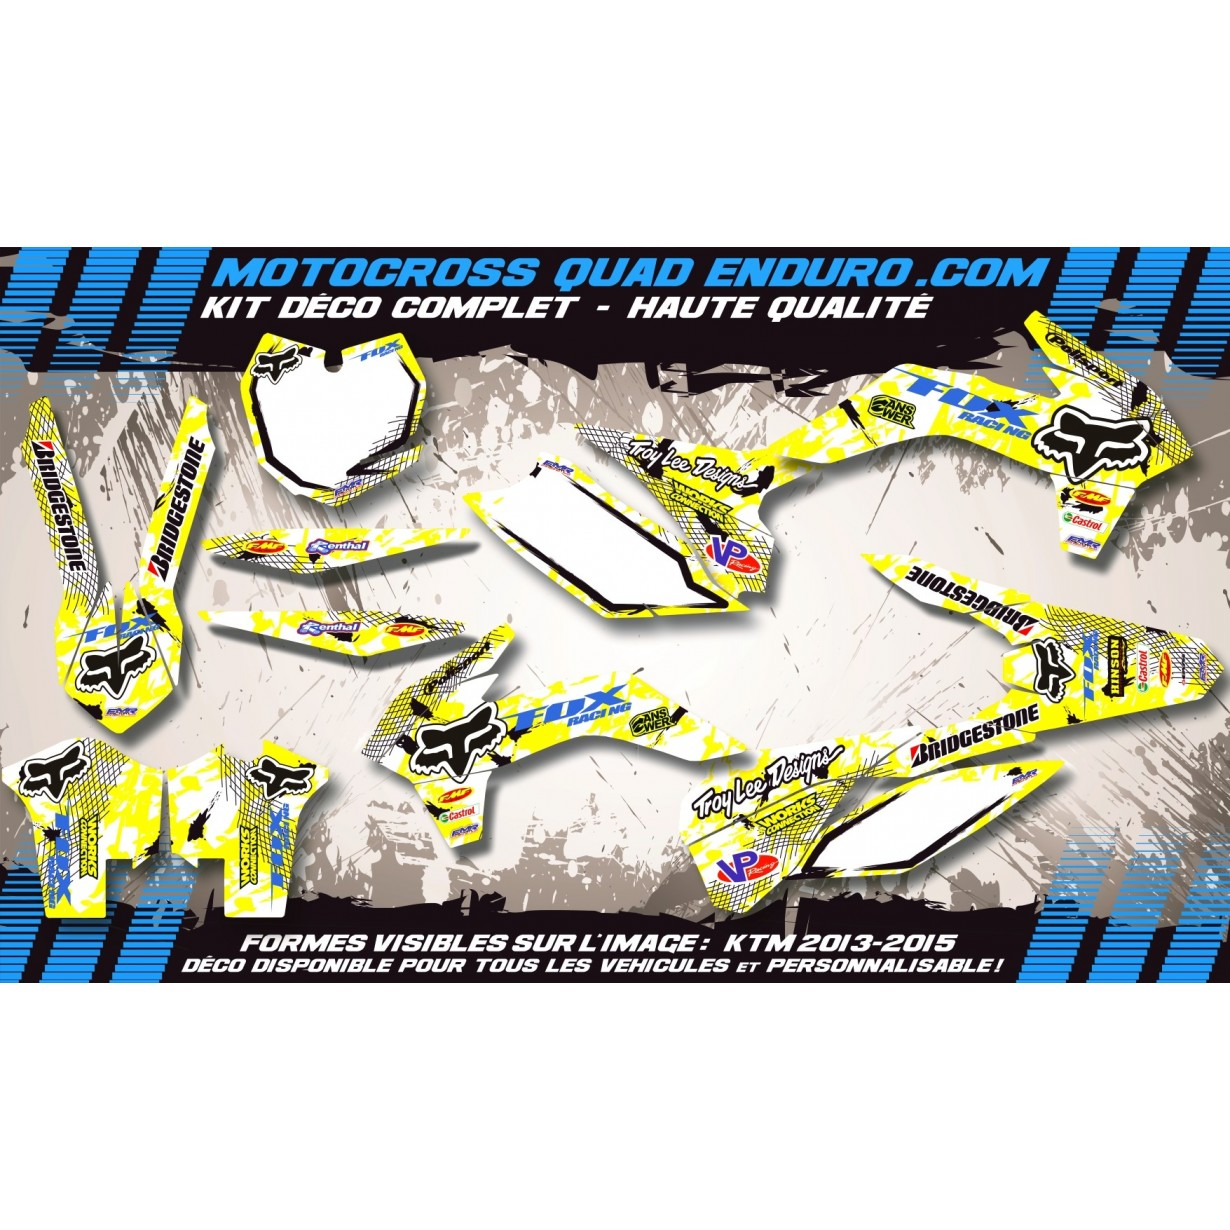 KIT DÉCO Perso 660 RAPTOR Quad FOX MA9D